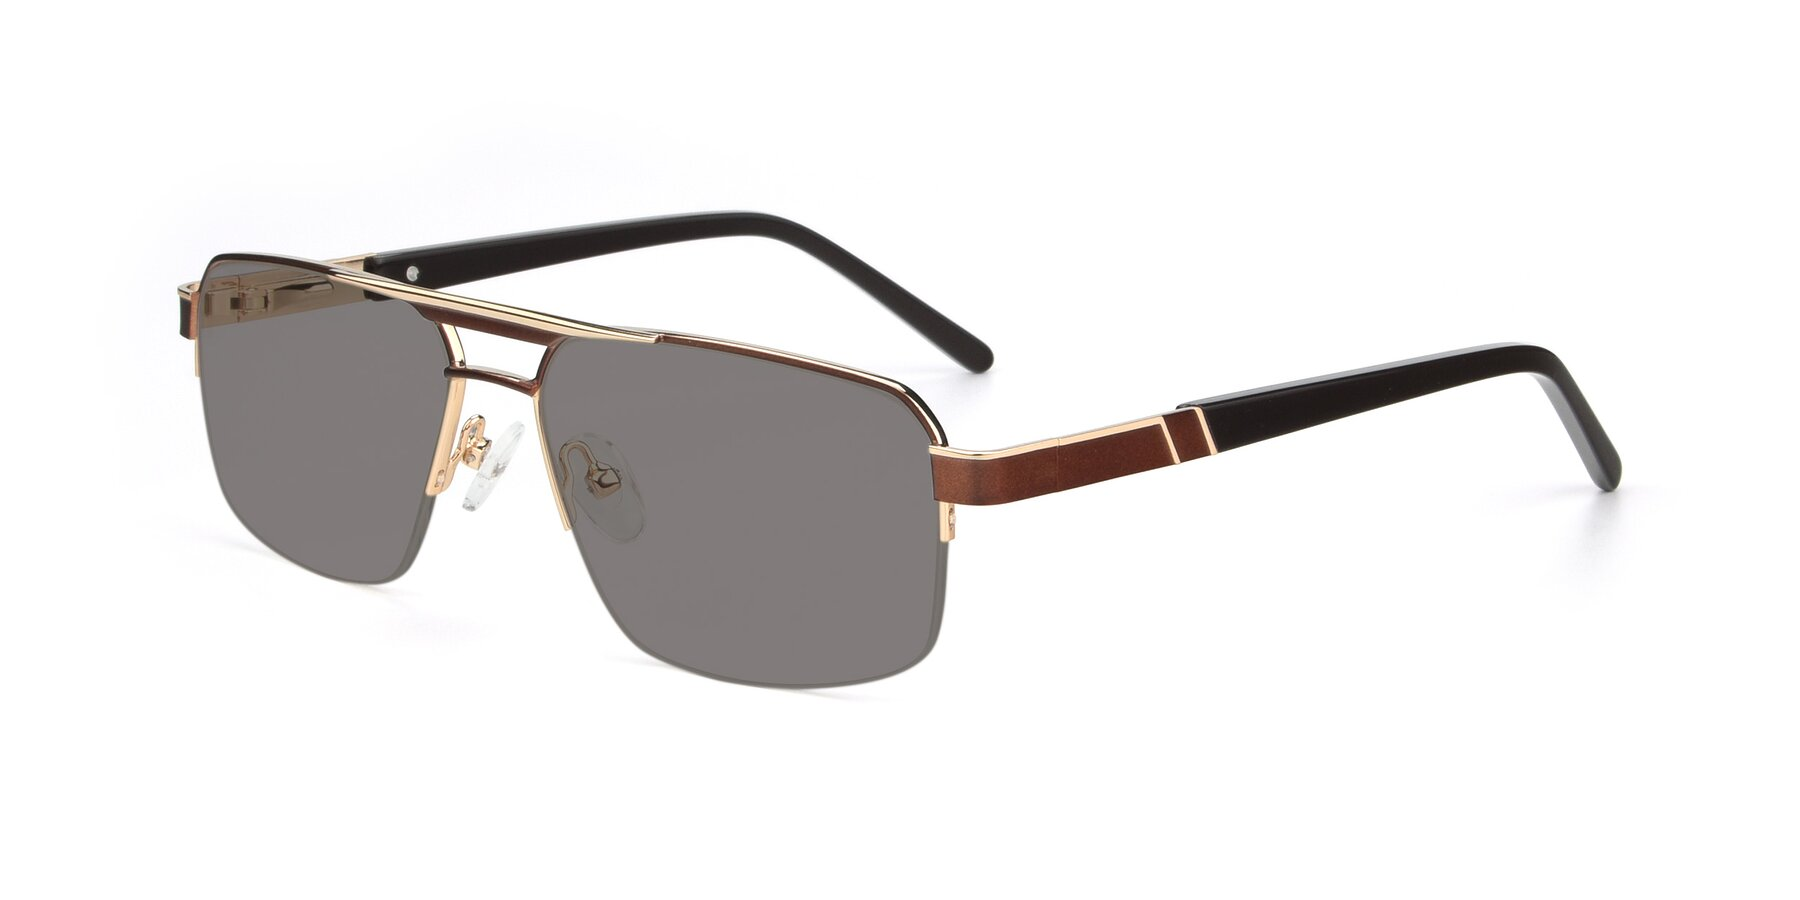 Angle of 19004 in Bronze-Gold with Medium Gray Tinted Lenses